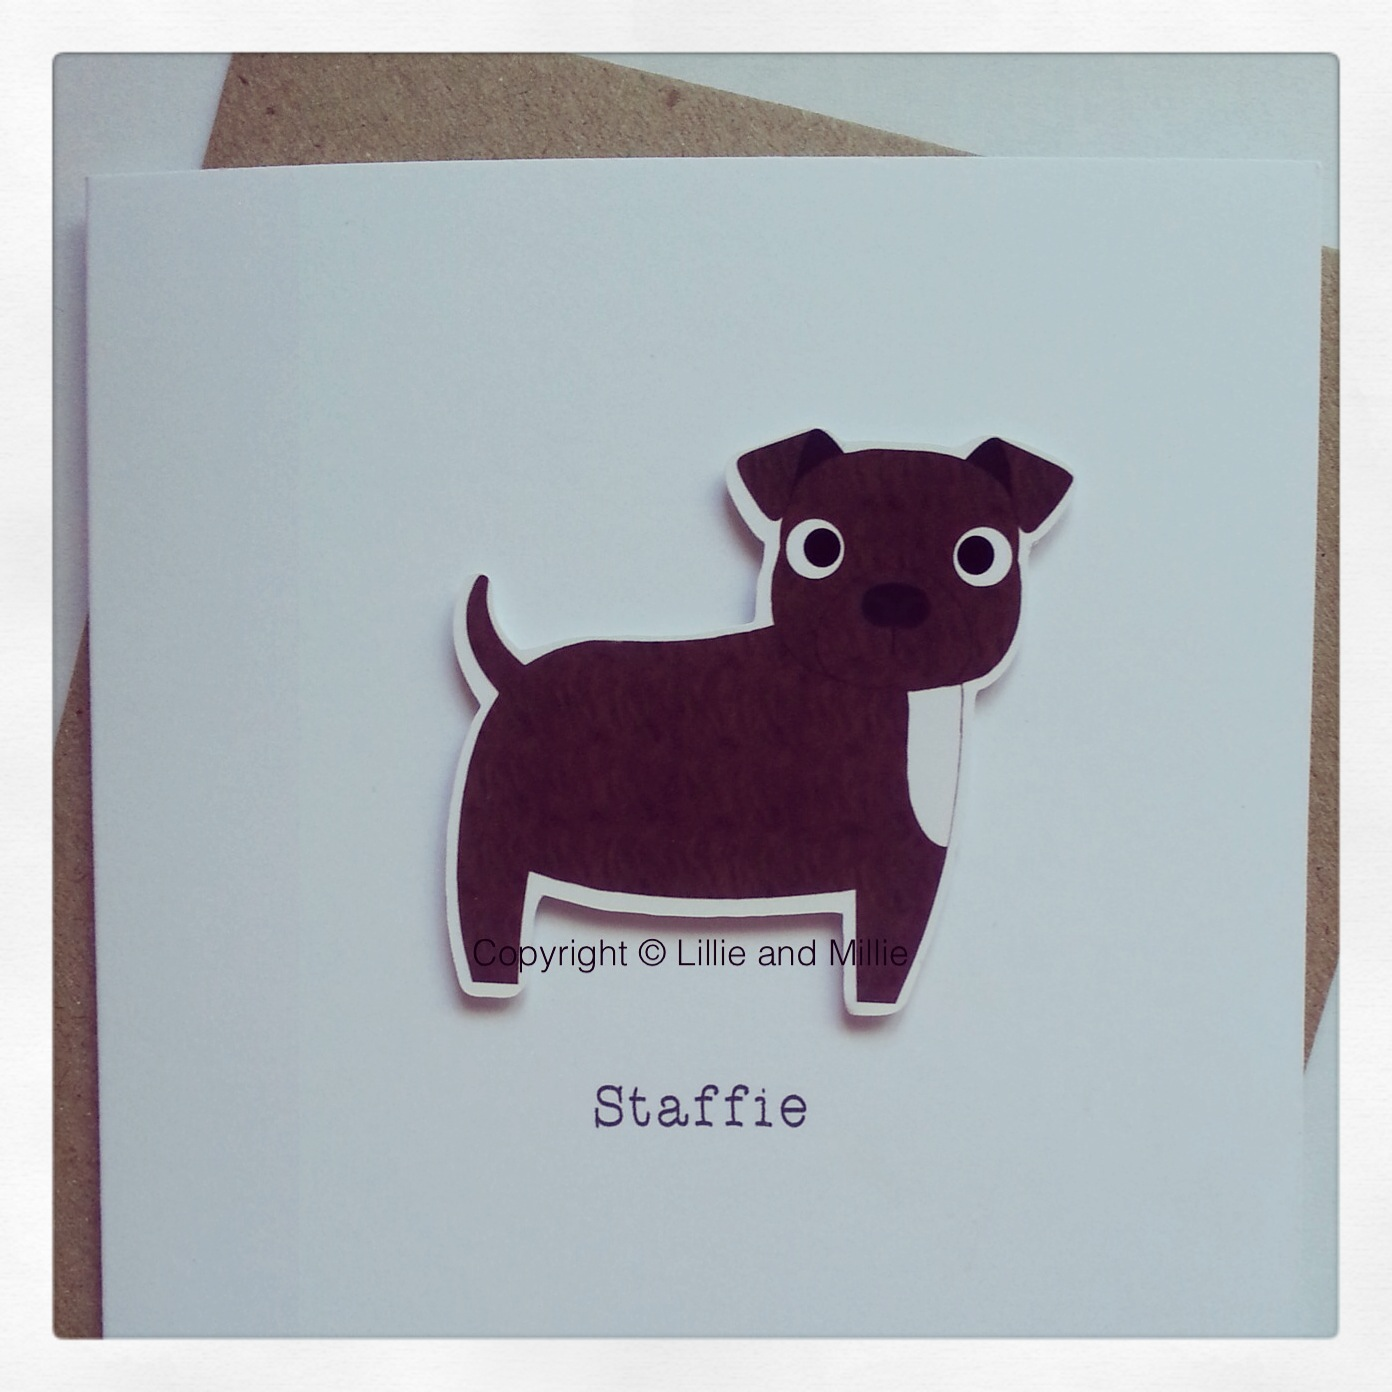 Staffie Staffordshire Terrier Dog Greetings Card